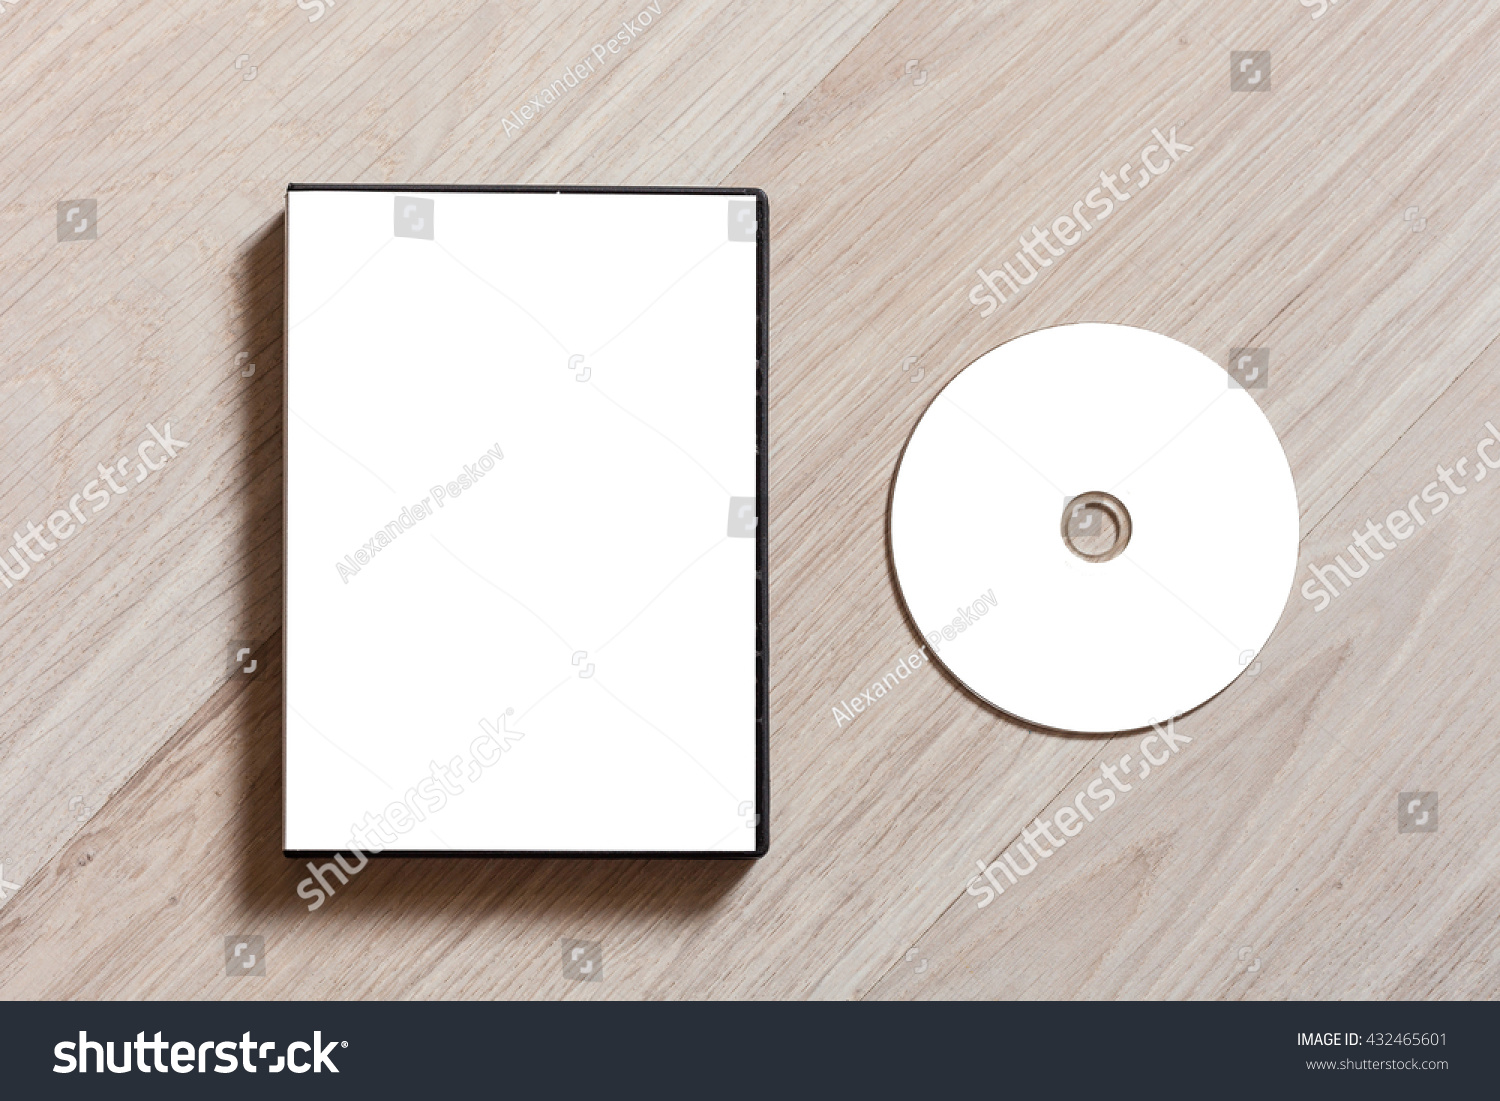 dvd cd disc cover case mockup stock photo 432465601 shutterstock. Black Bedroom Furniture Sets. Home Design Ideas